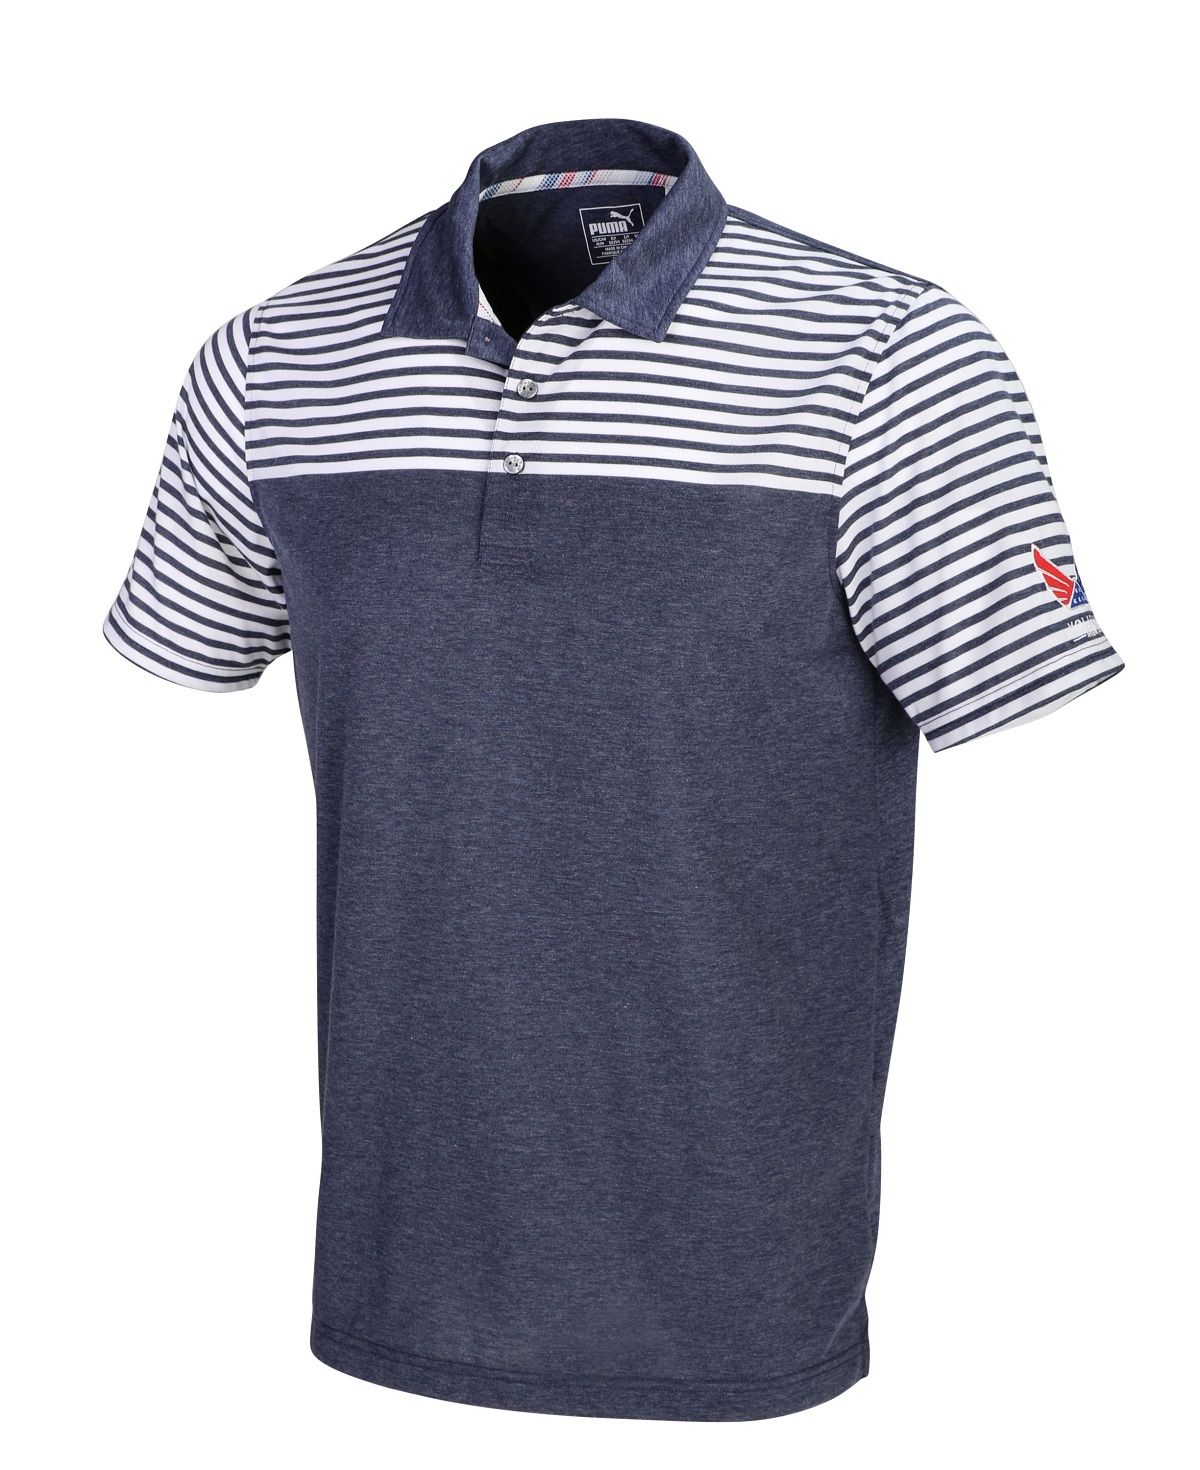 c623148a407 Puma Golf- Volition Clubhouse Polo